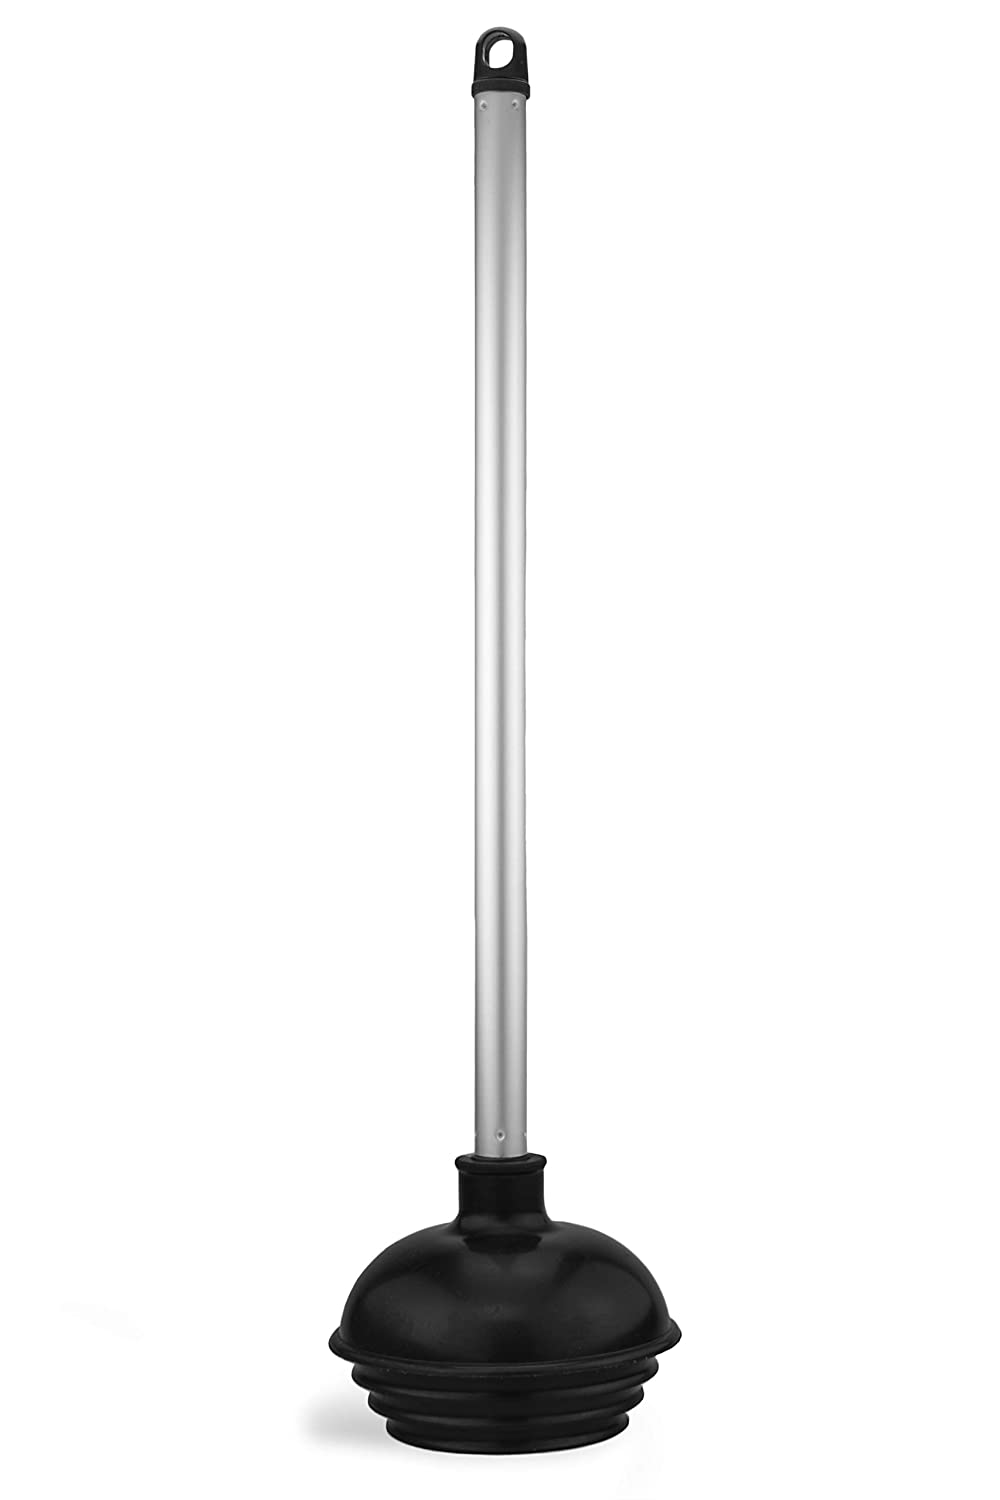 Neiko 60170A Toilet Plunger with Patented All-Angle Design Aluminum Handle Heavy Duty 2-Pack